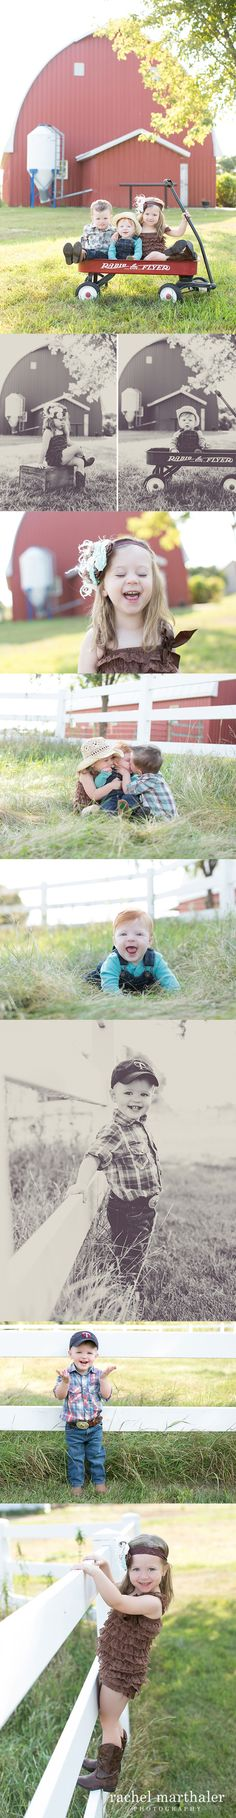 Children's farm rustic country session - Rachel Marthaler Photography - Hastings, MN twin cities photographer